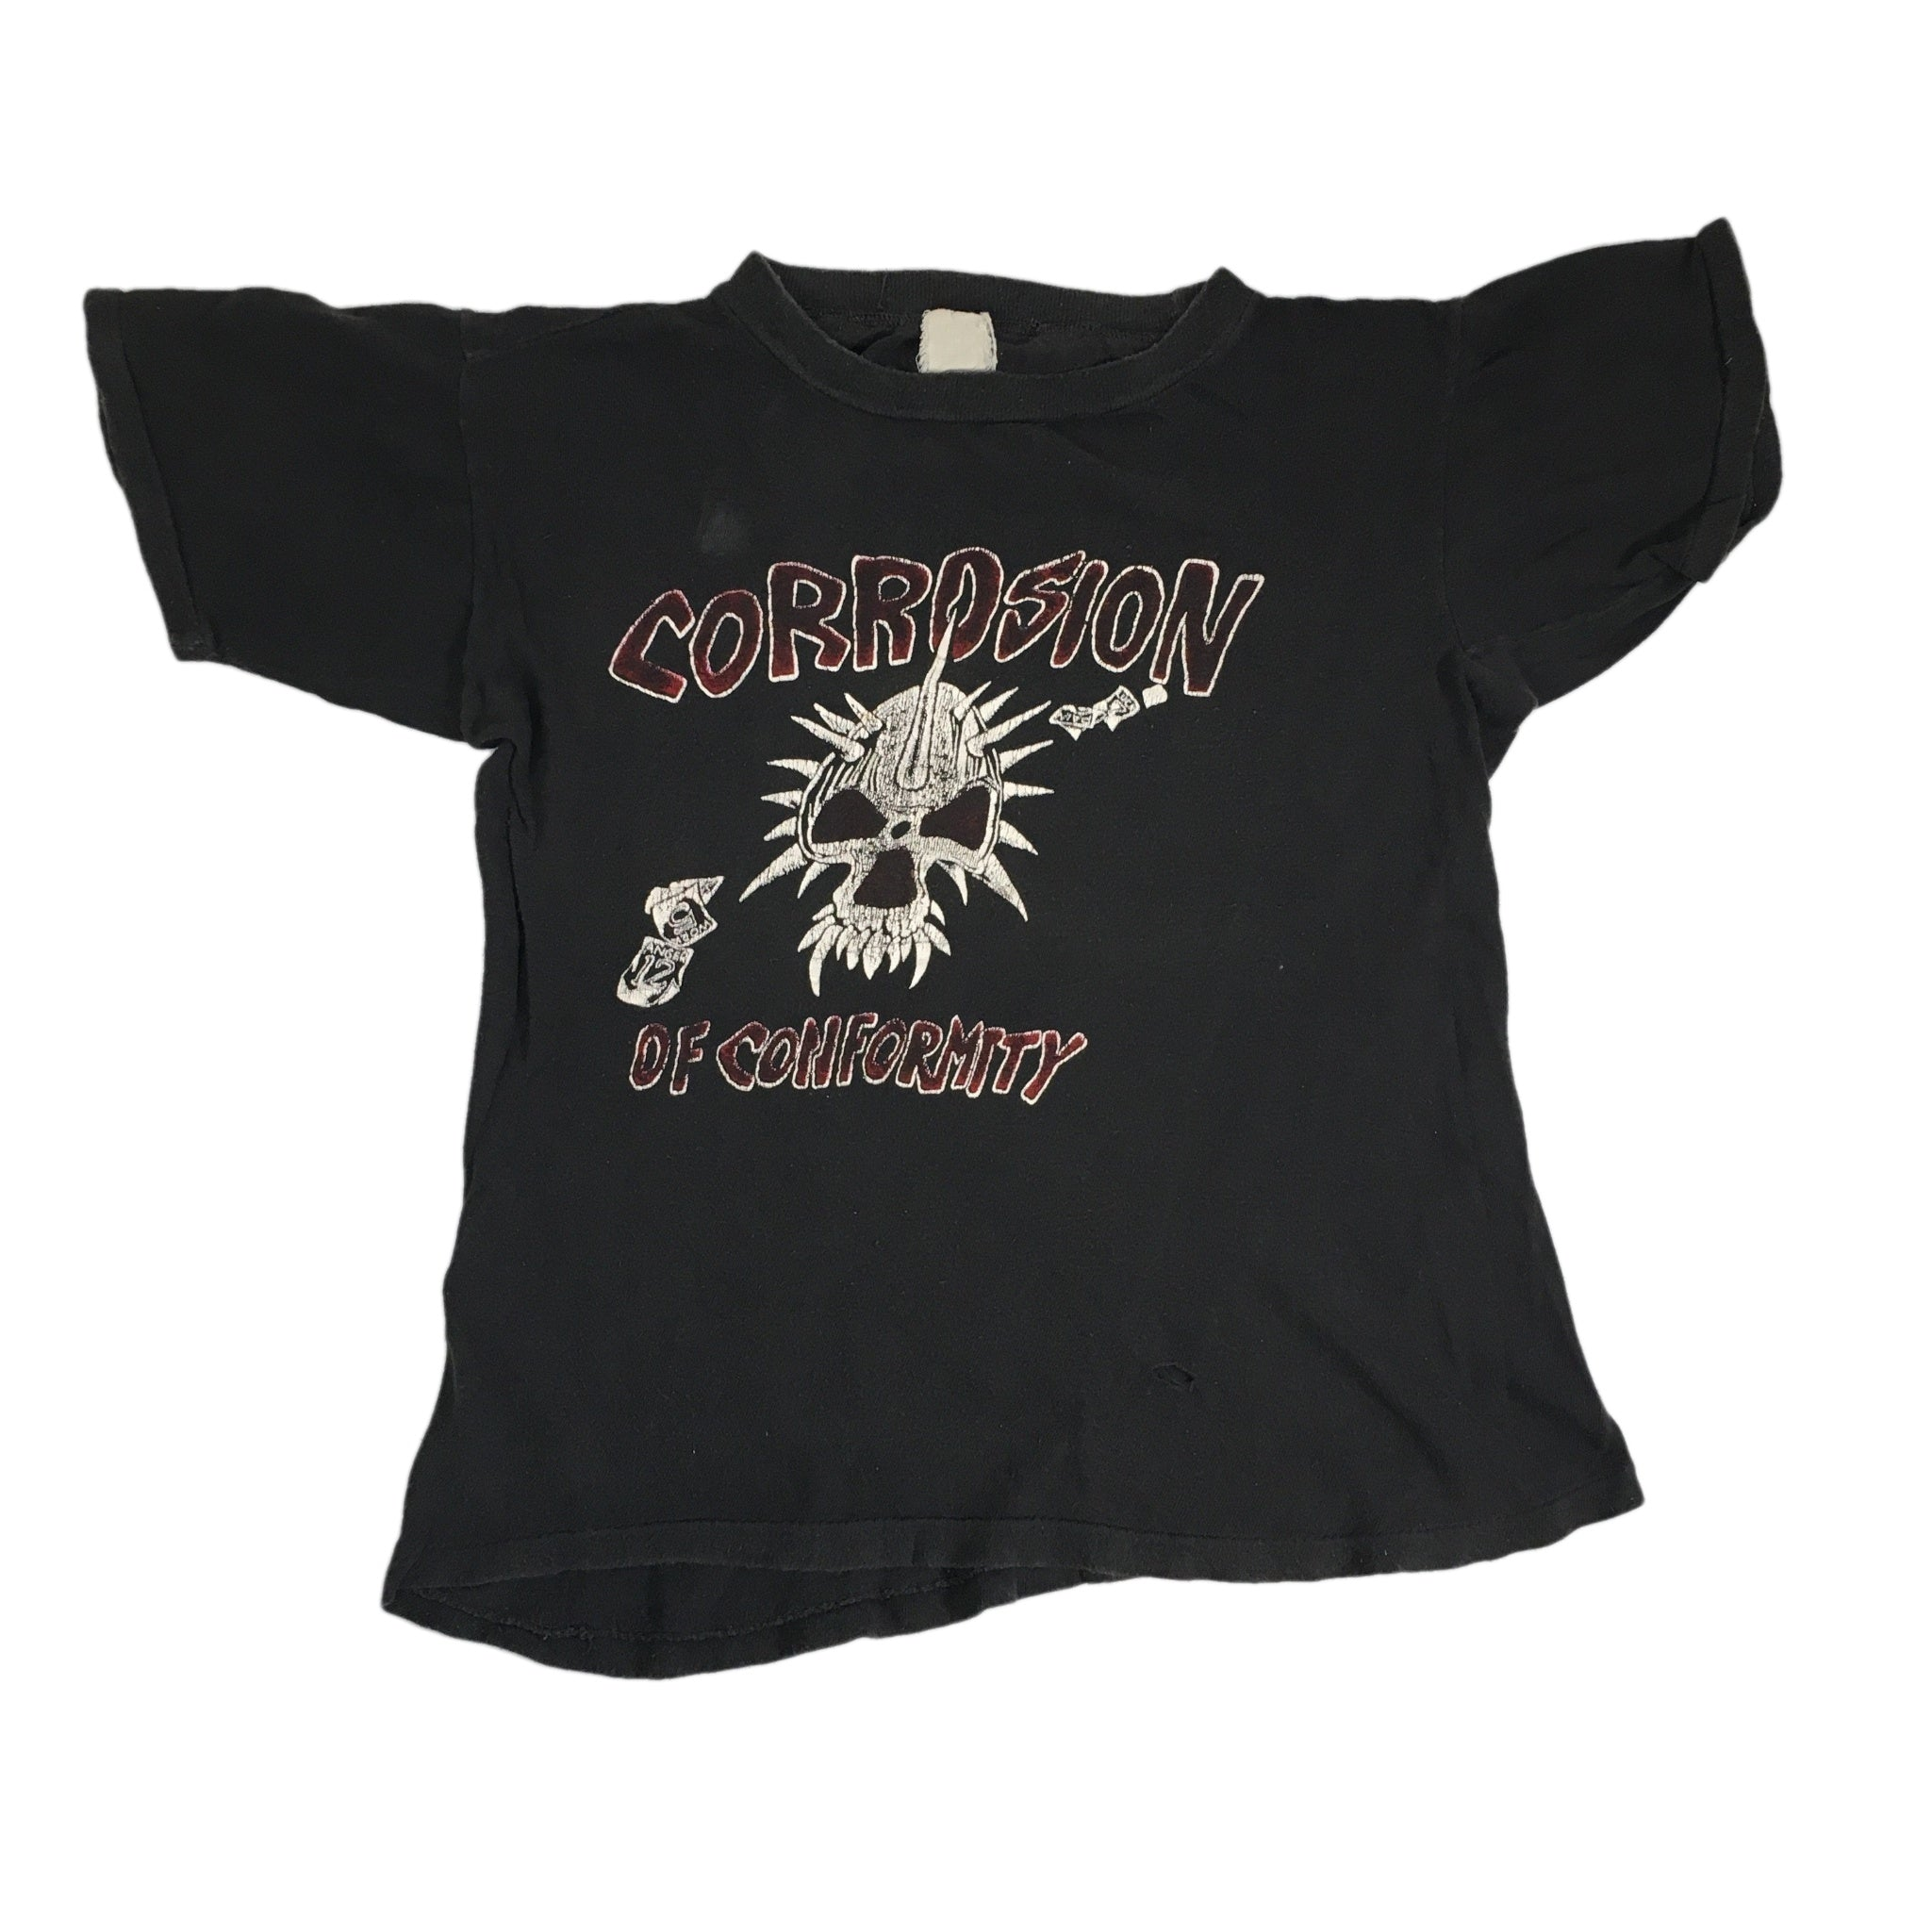 "Vintage Corrosion Of Conformity ""Animosity"" T-Shirt"